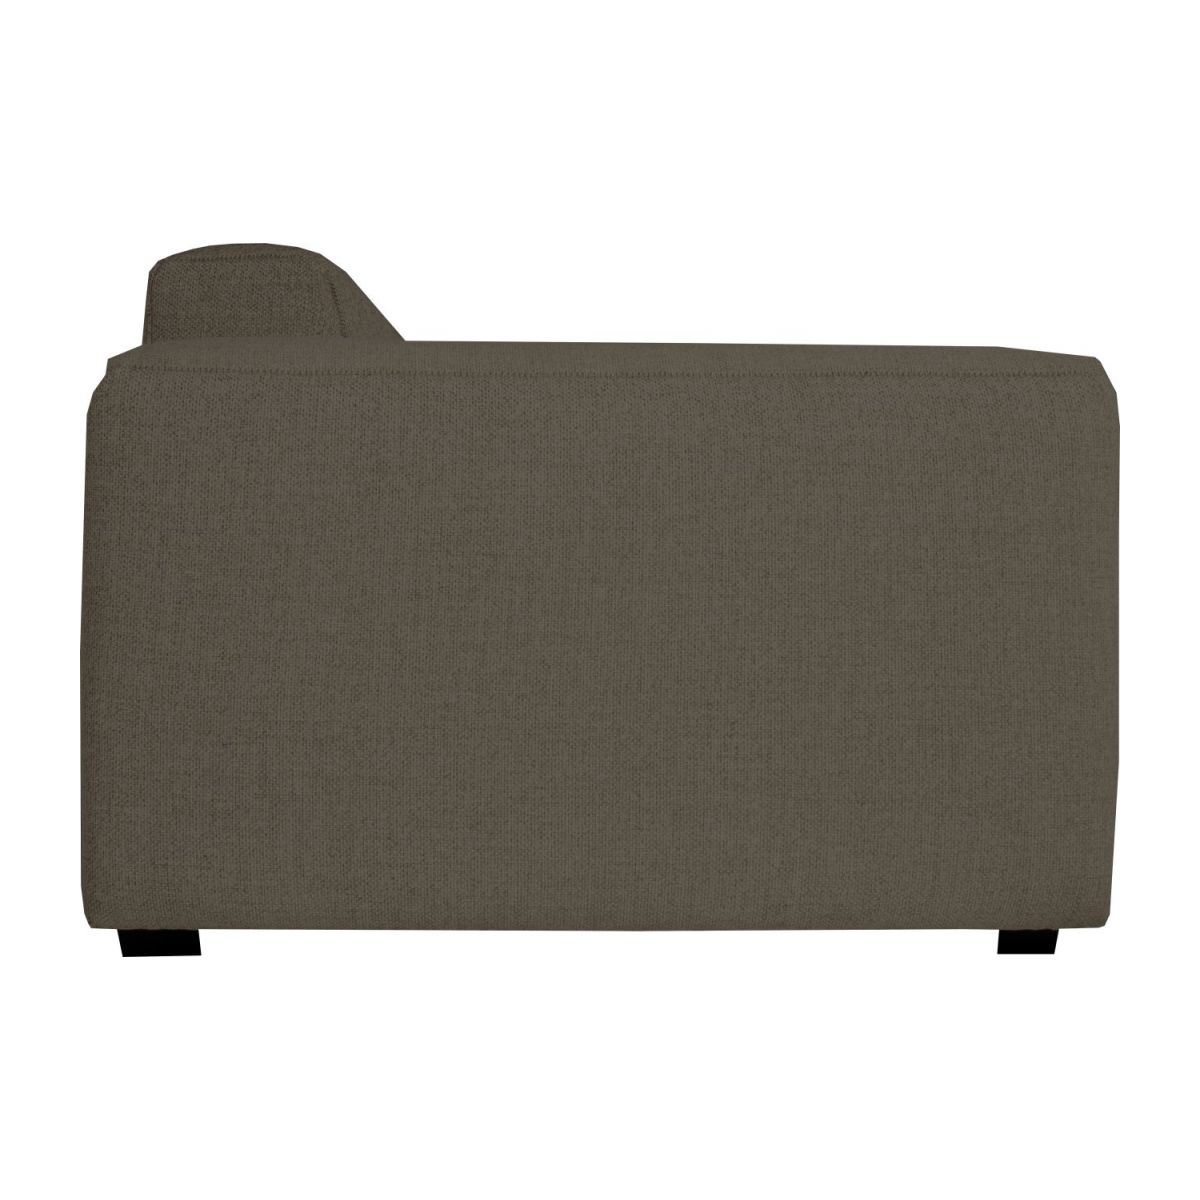 3 seater sofa in Lecce fabric, muscat n°4